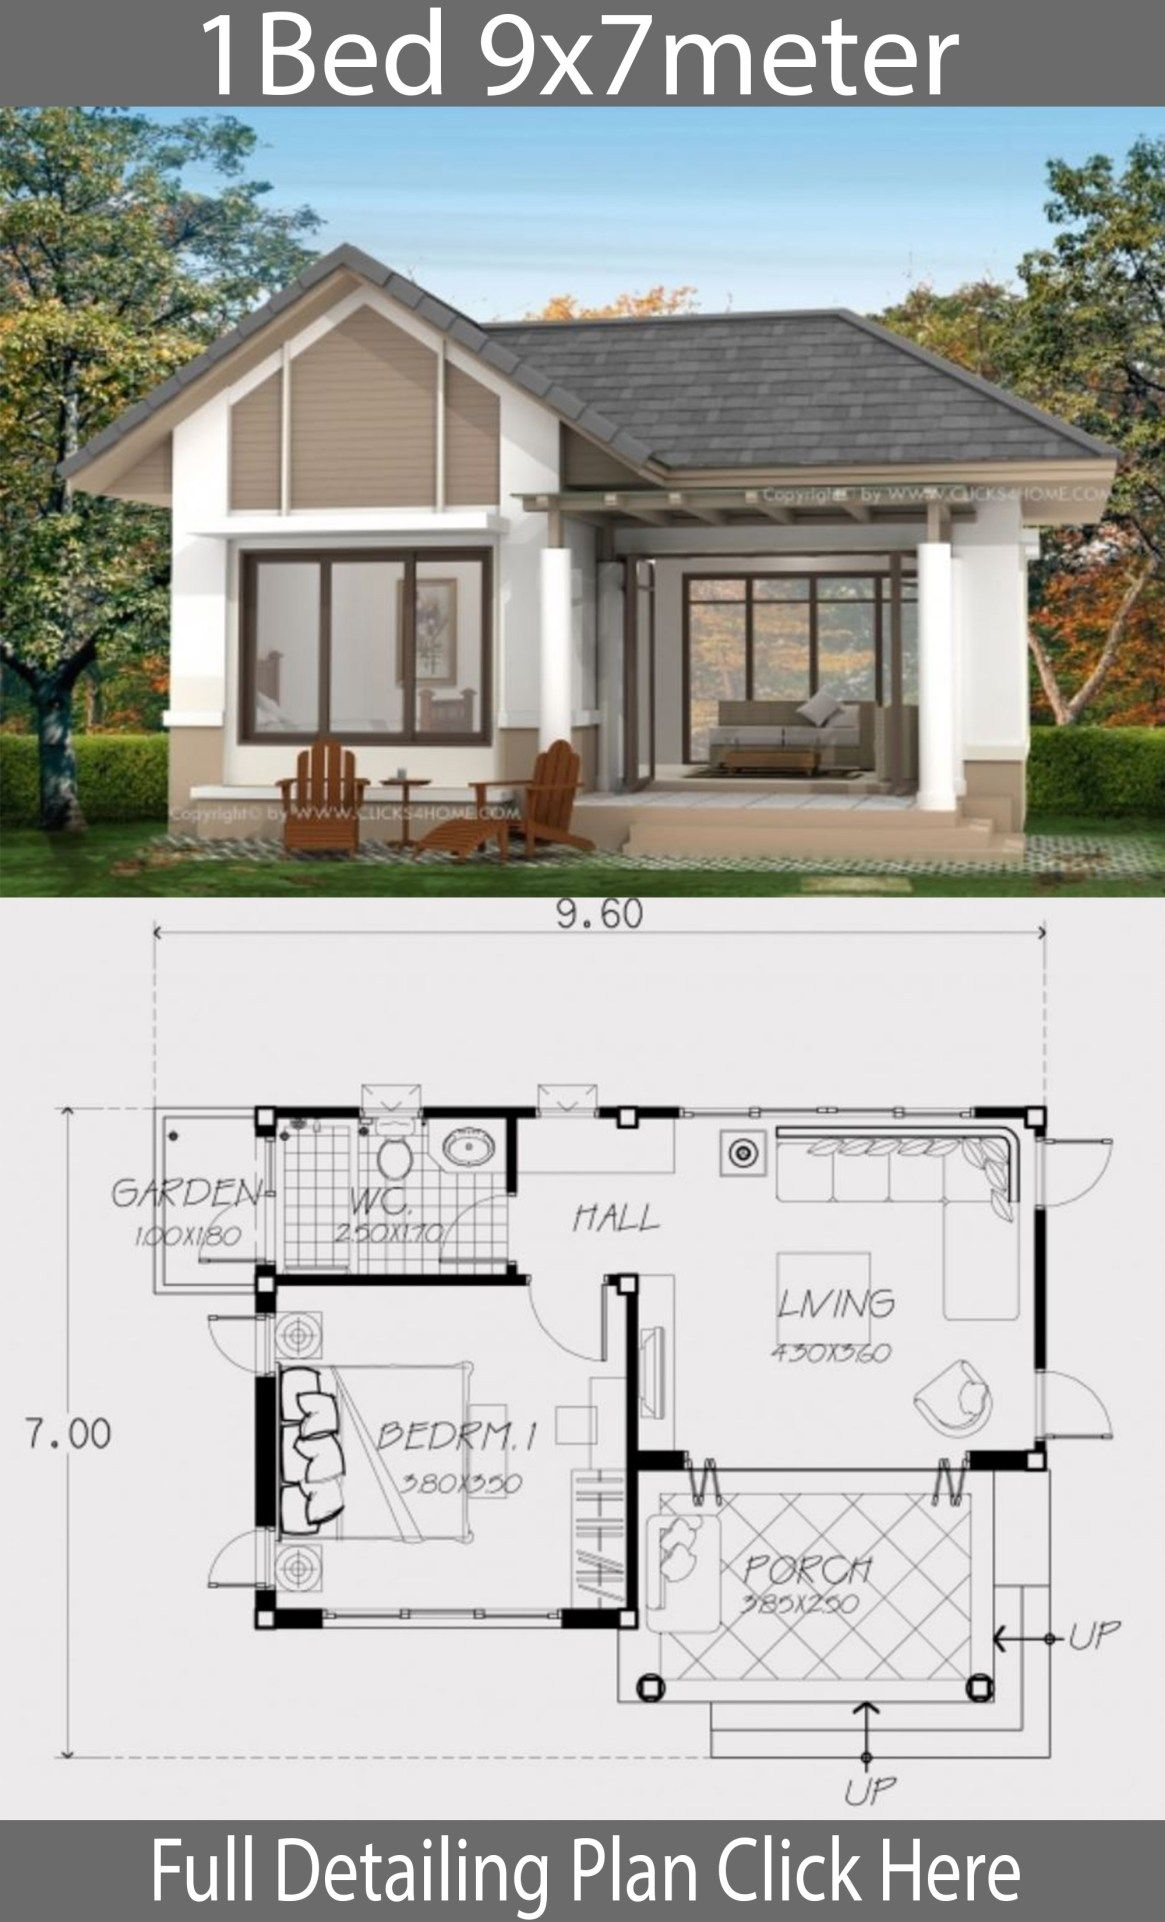 Home Design Plan 9x7m With One Bedroom Home Design With Plansearch One Bedroom House Plans One Bedroom House Cottage Design Plans